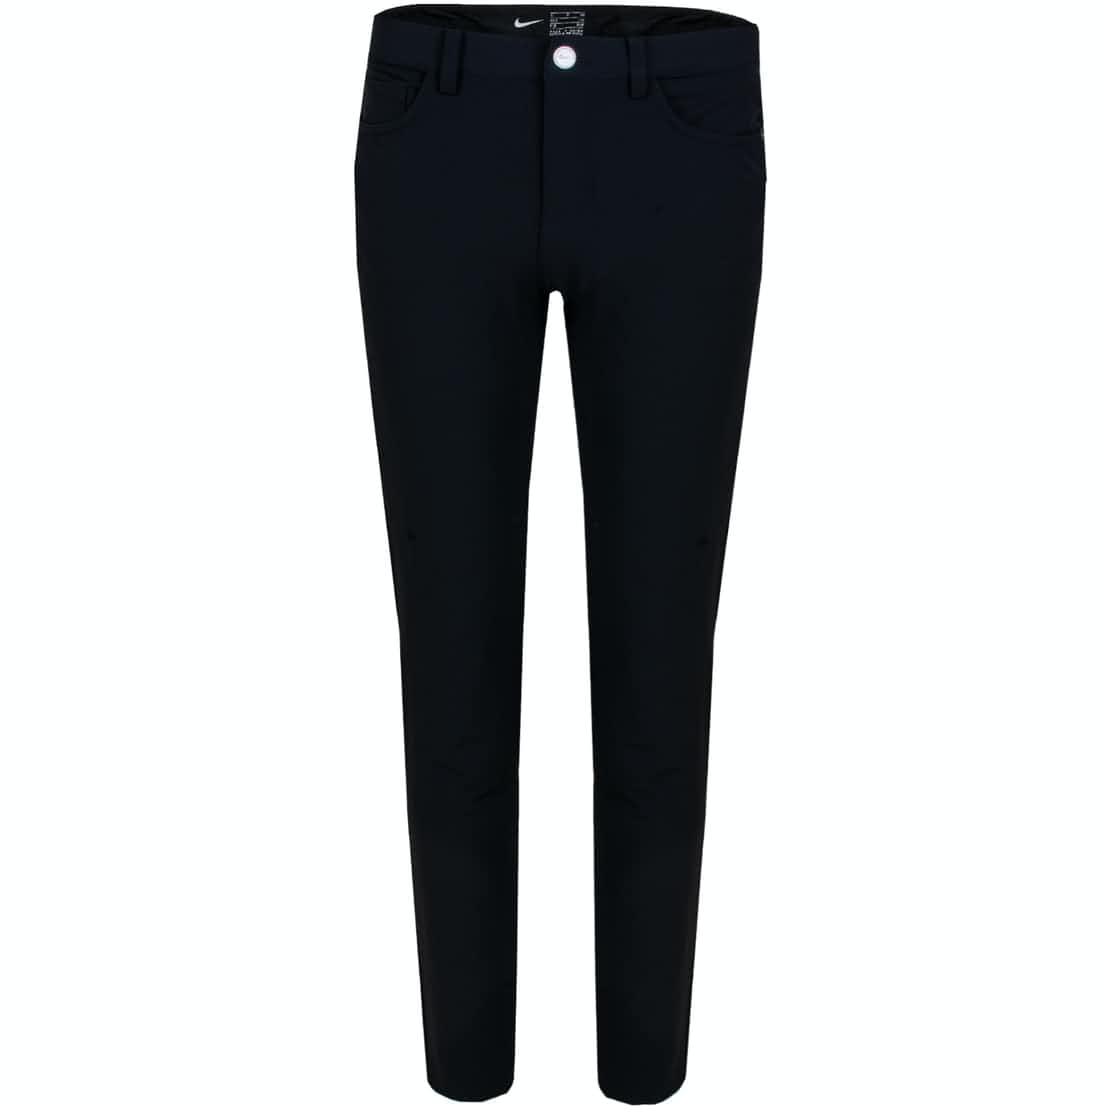 Womens Slim Warm Pants Black - 2020